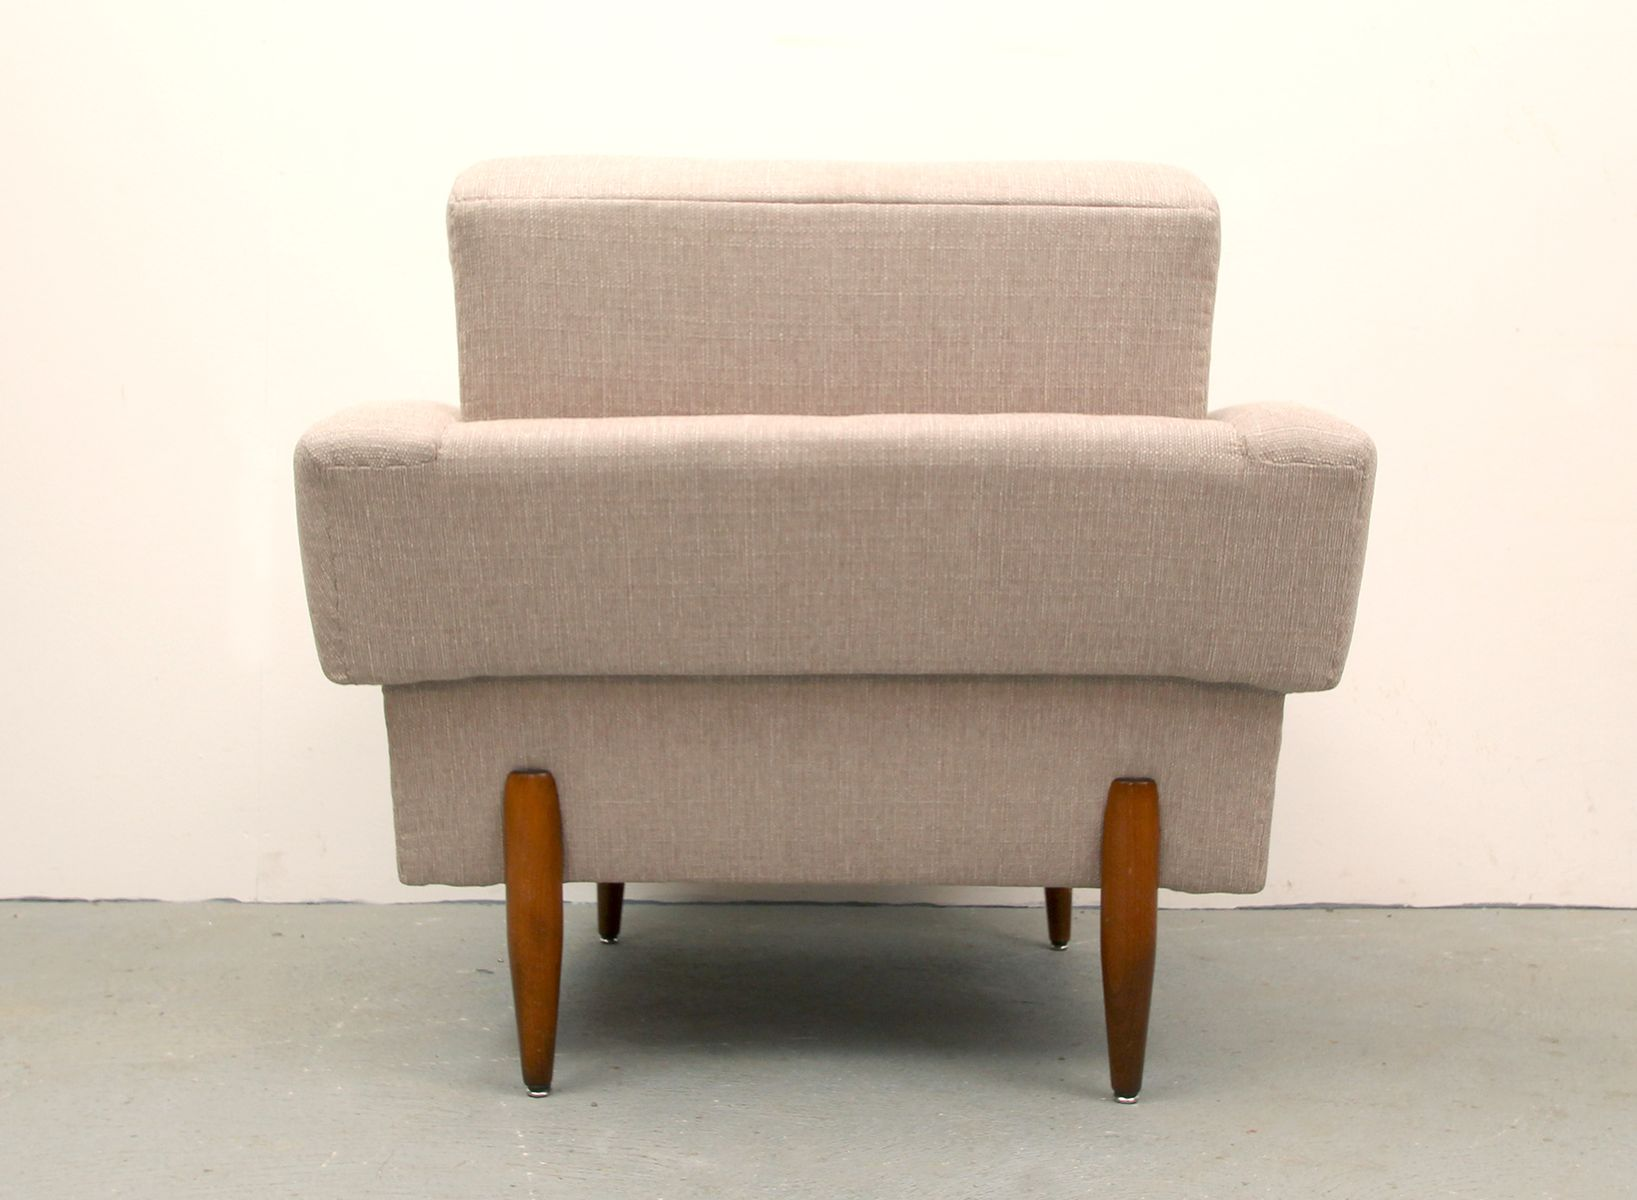 German Light Beige Club Chair 1950s for sale at Pamono